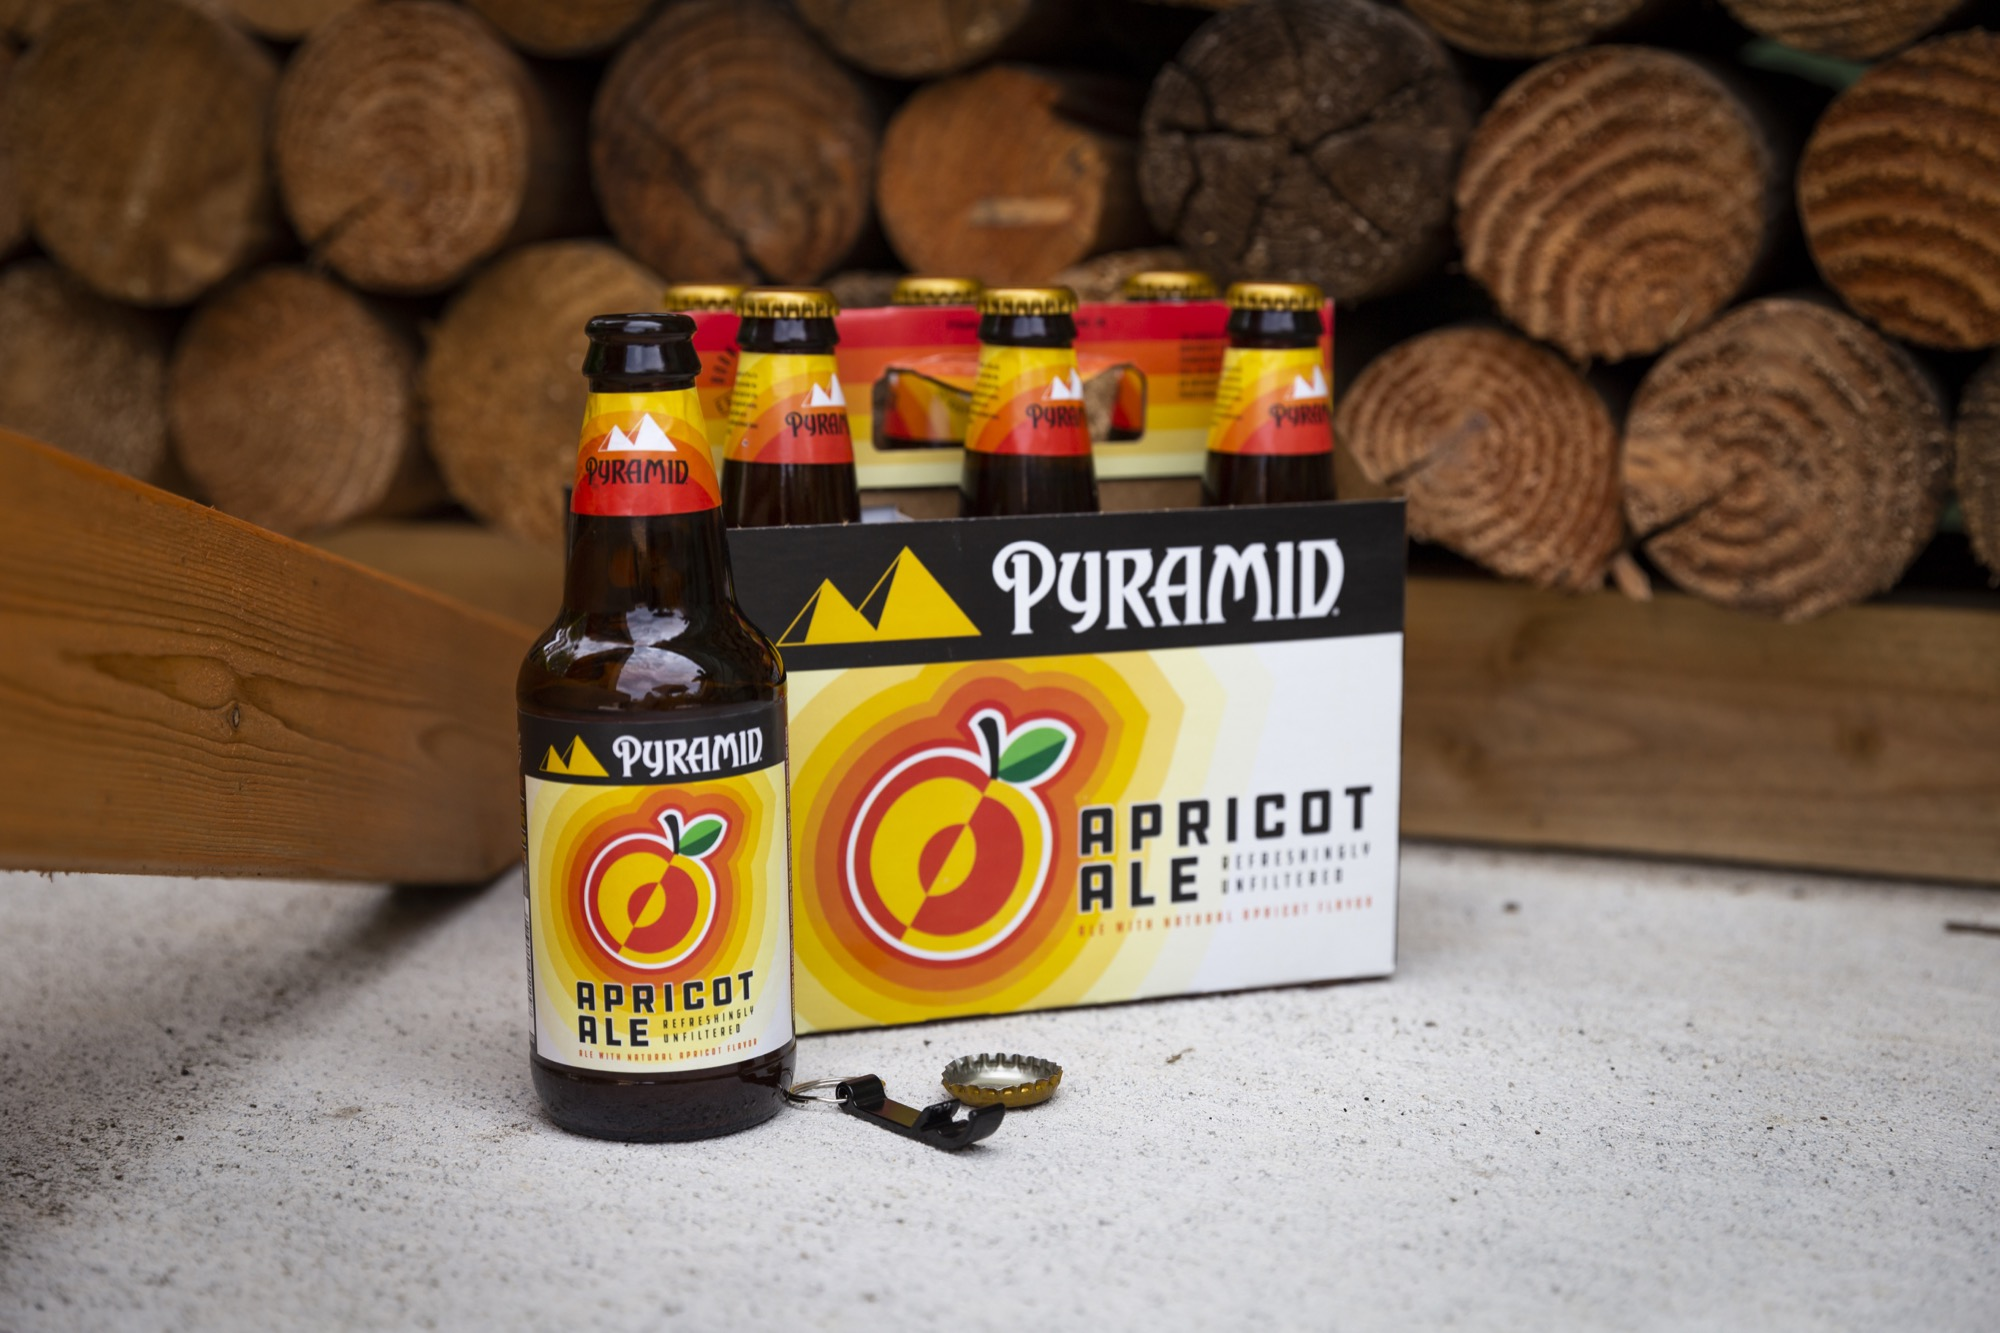 image of Apricot Ale courtesy of Pyramid Brewing